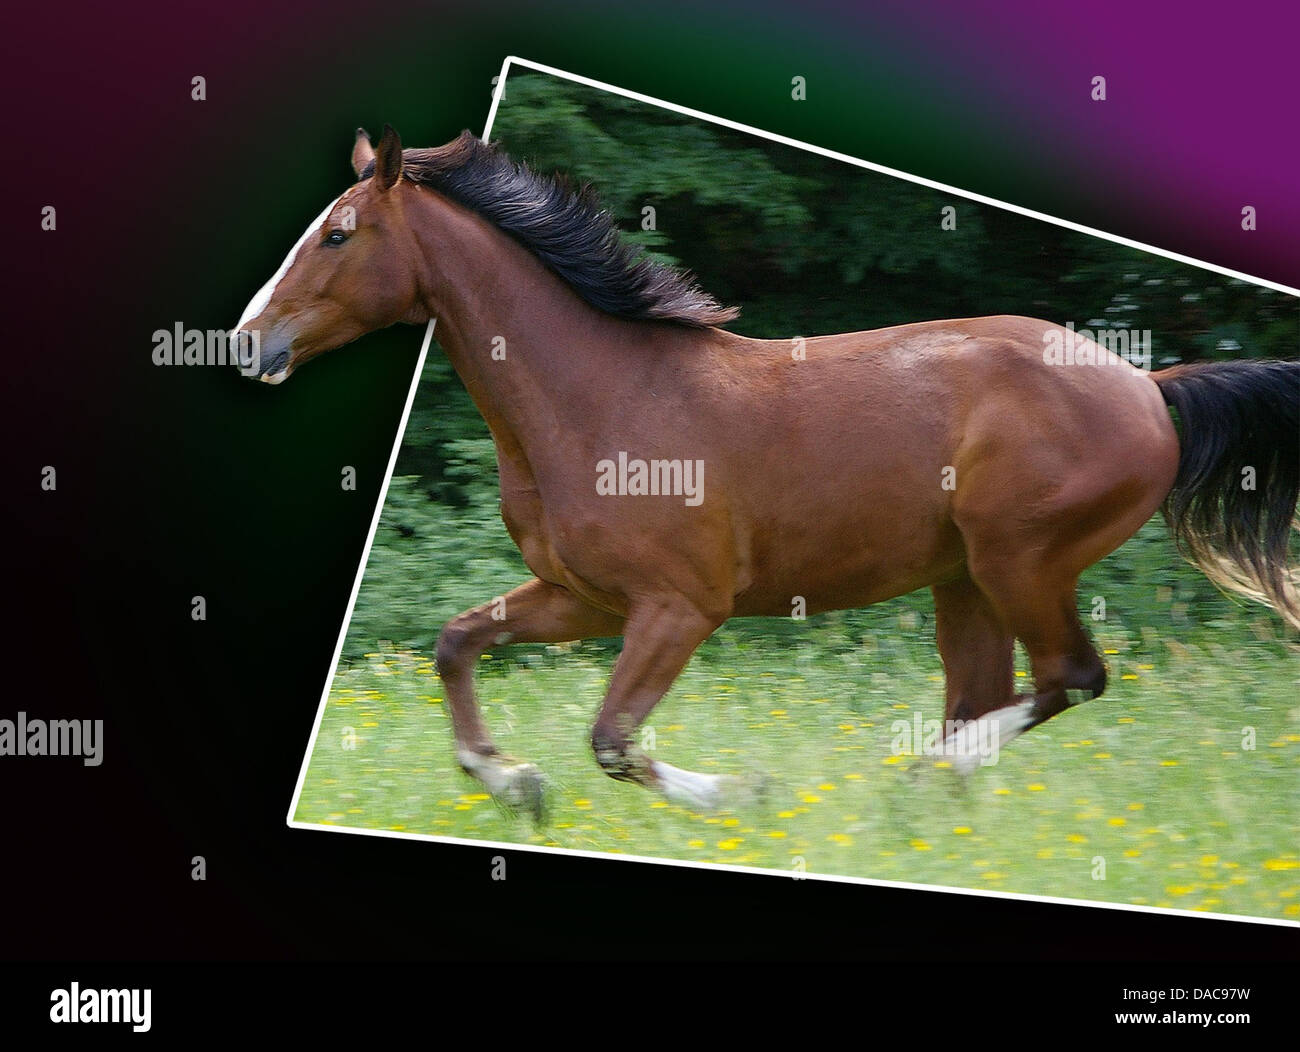 galloping horse out of bound gradient digital art - Stock Image